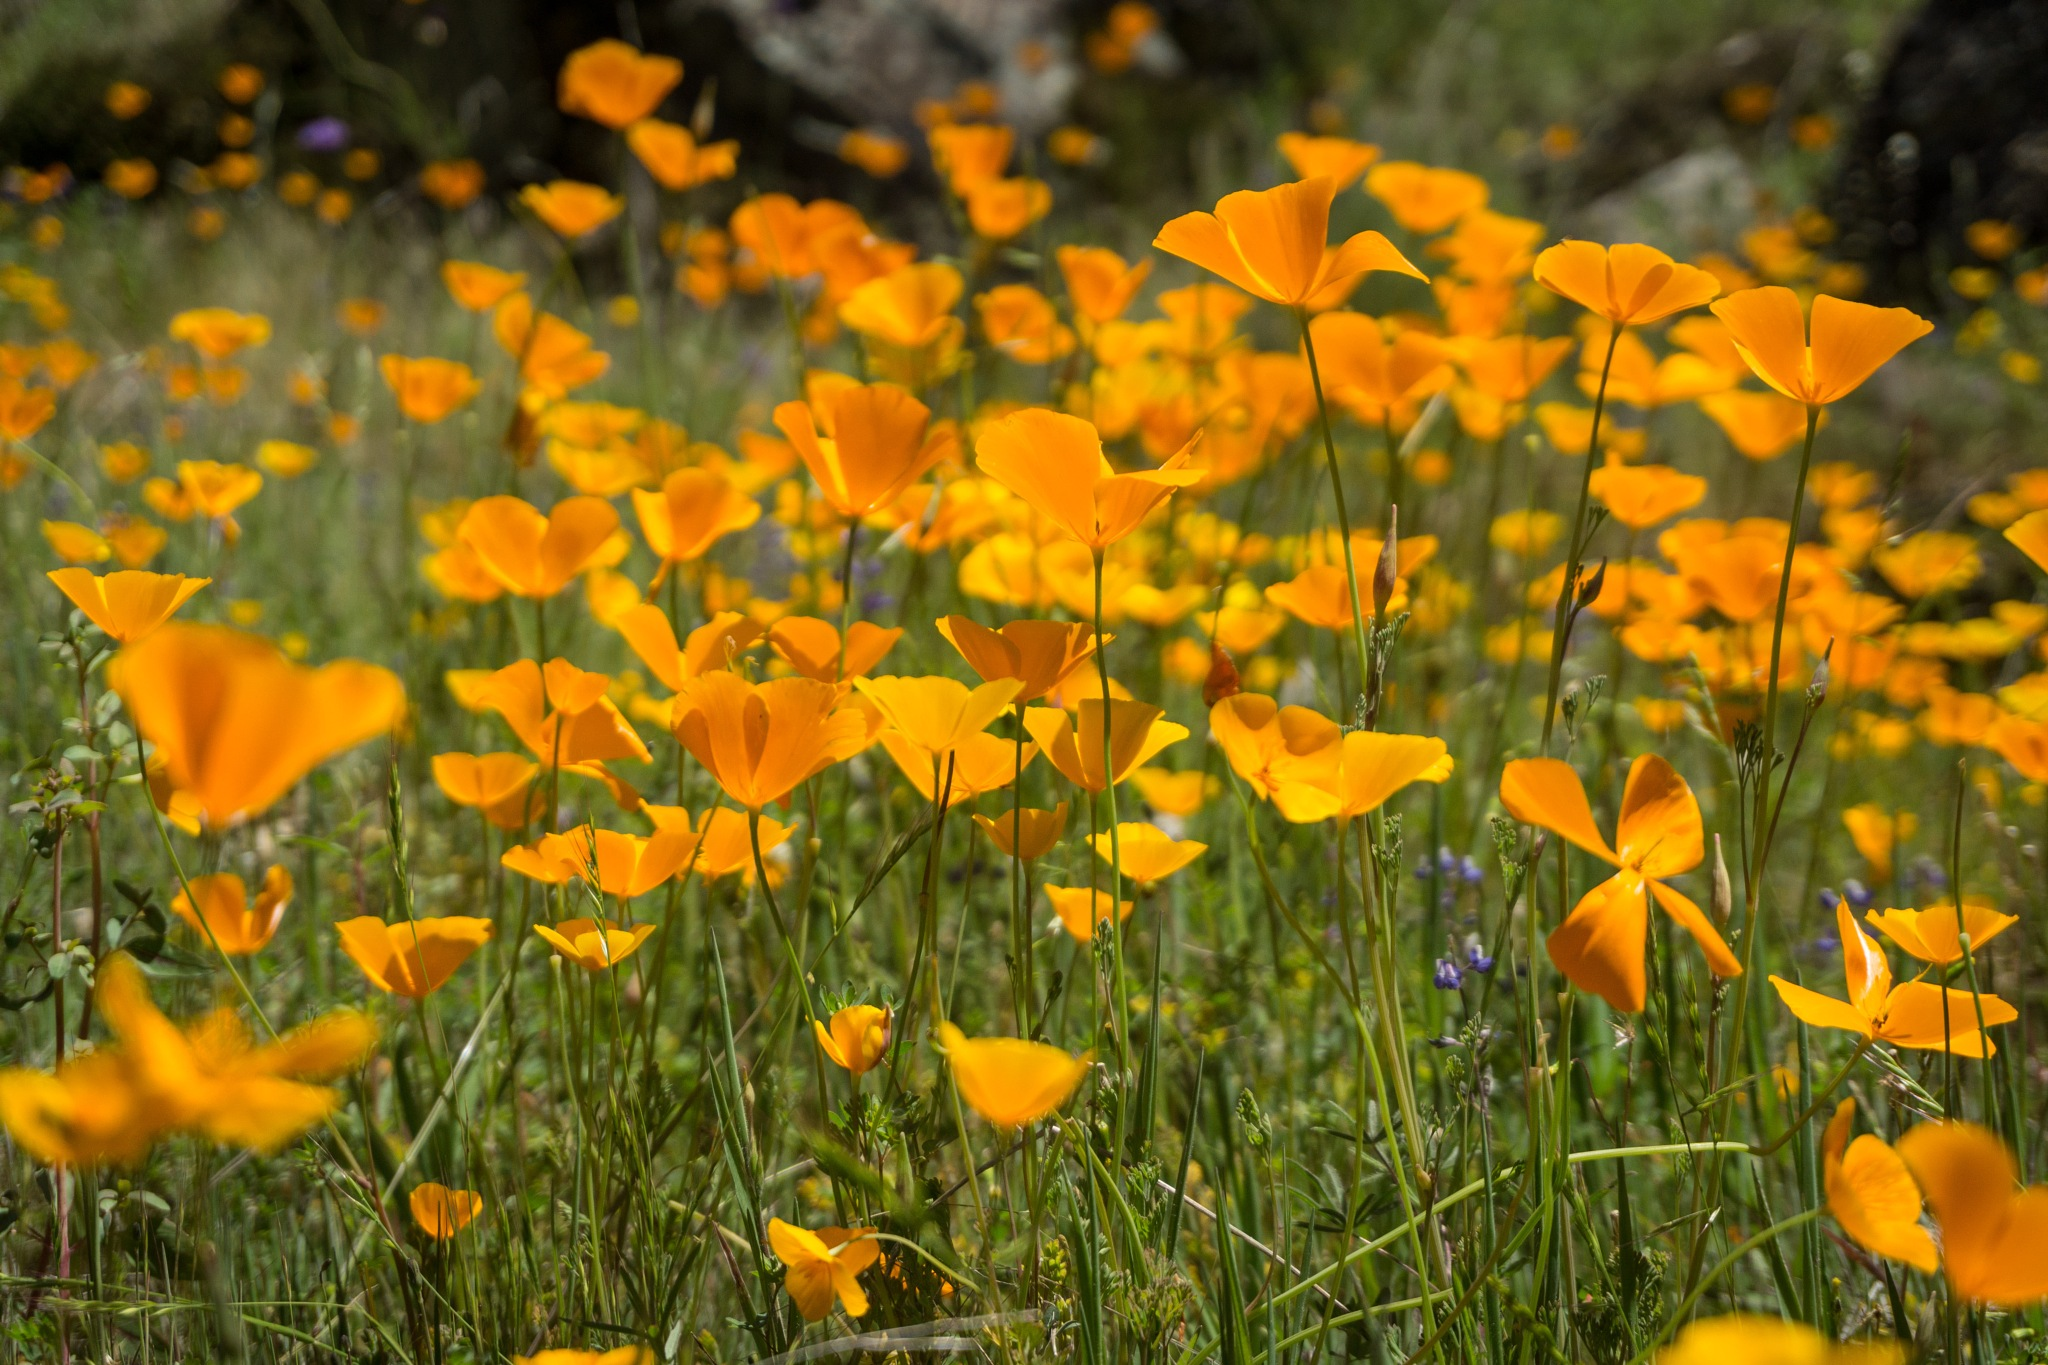 Field of California Poppies by Michael Sheltzer